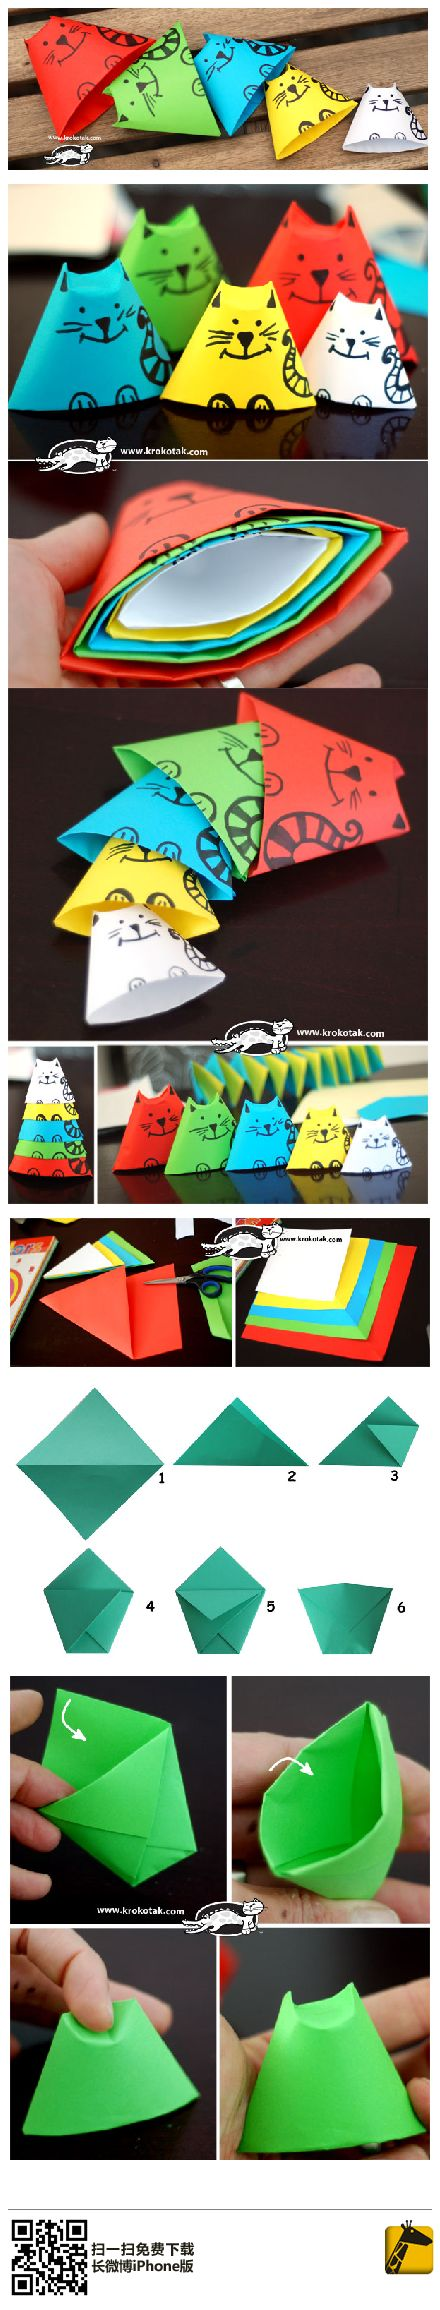 Nested paper cats!: